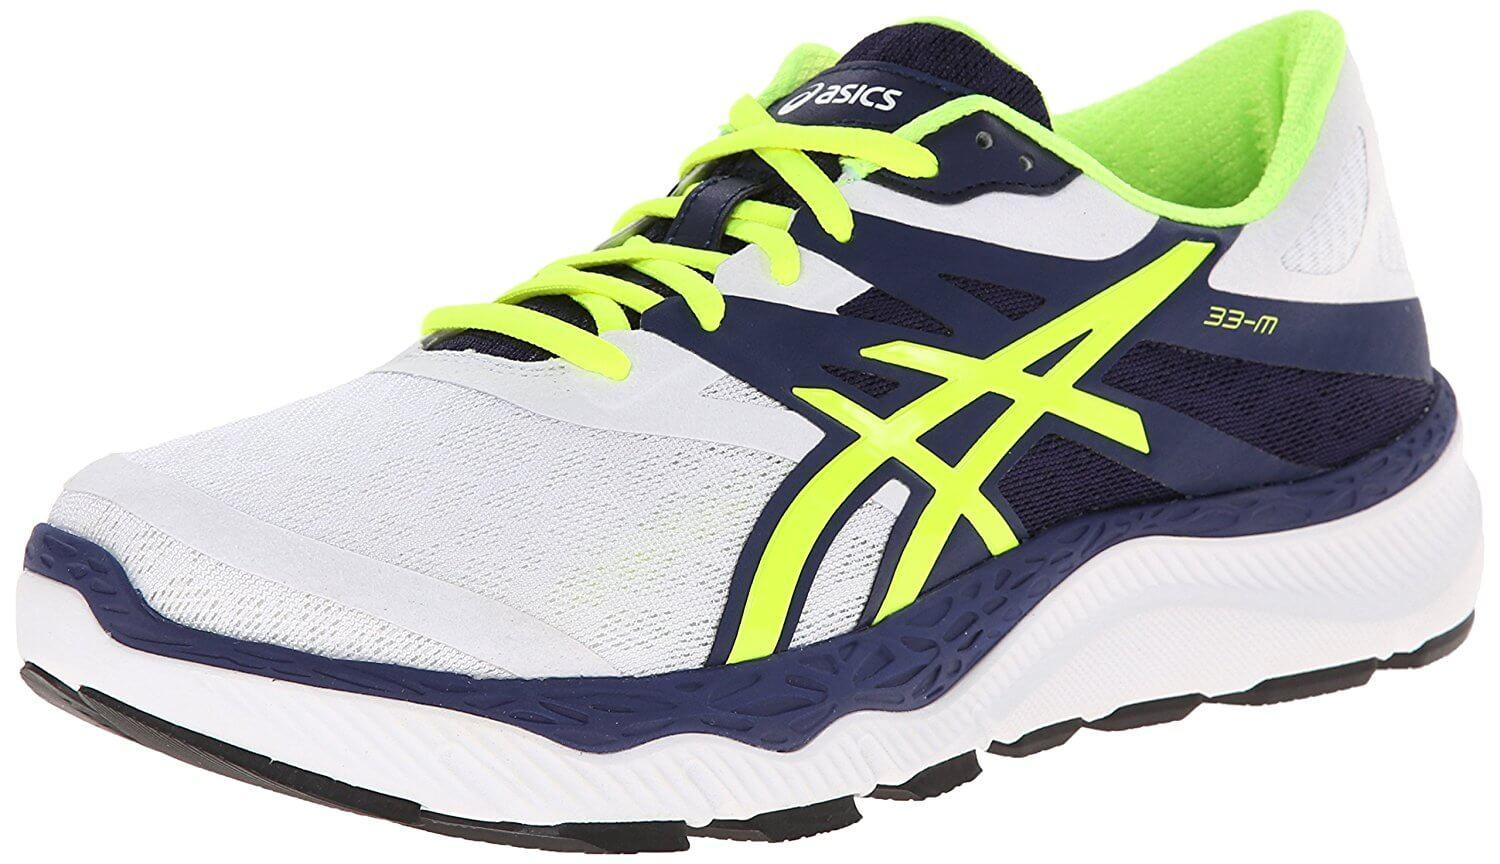 A three quarter view of the Asics 33 M ...